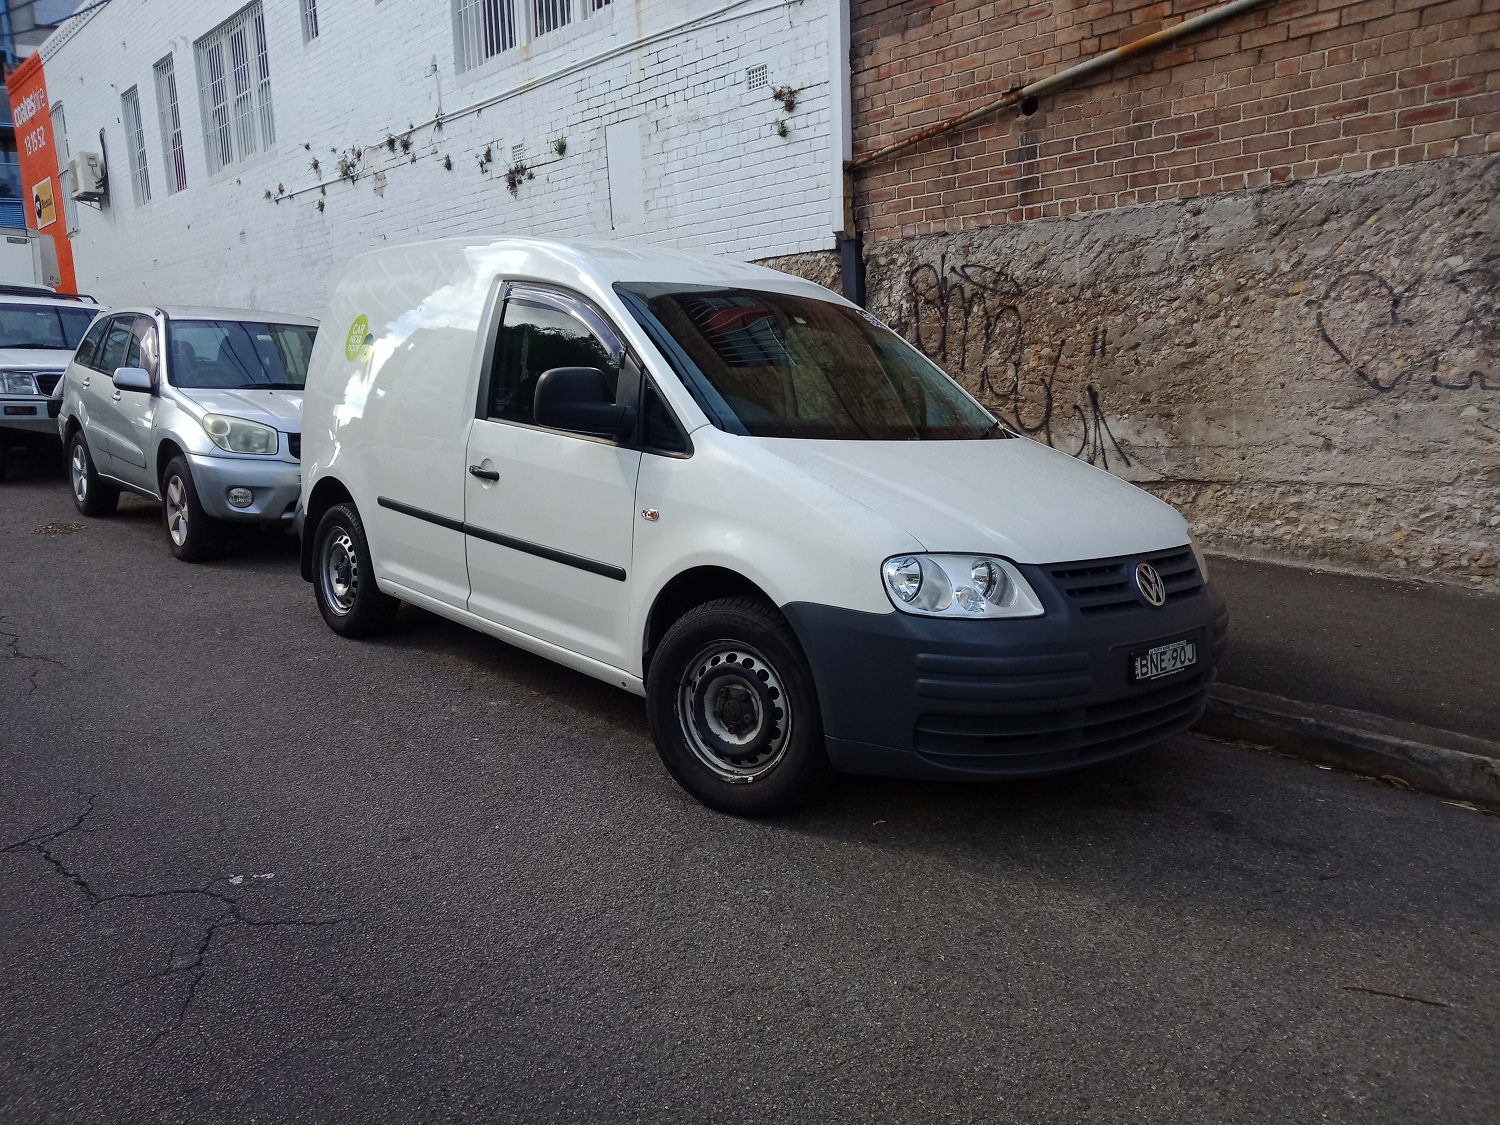 Picture of Rowan's 2008 Volkswagen Caddy